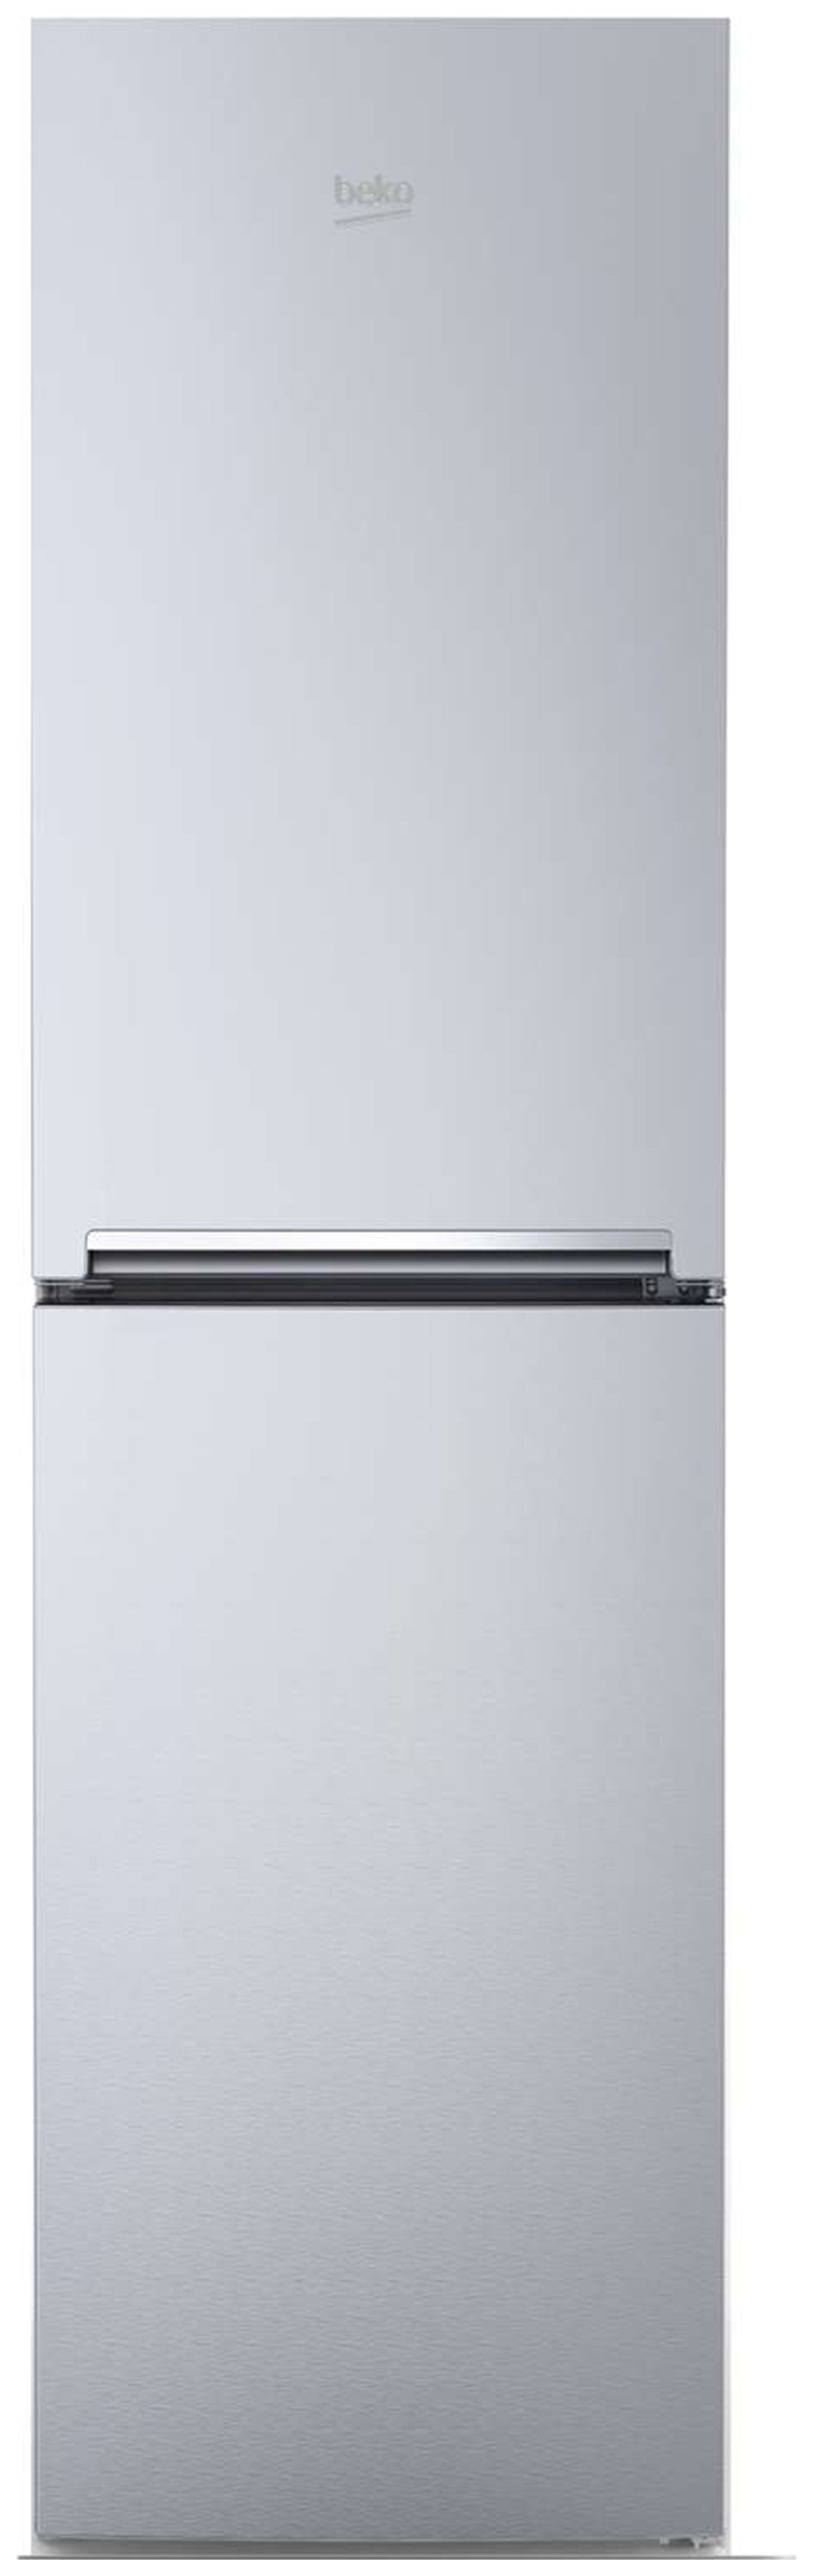 Beko CFG1582S Fridge Freezer